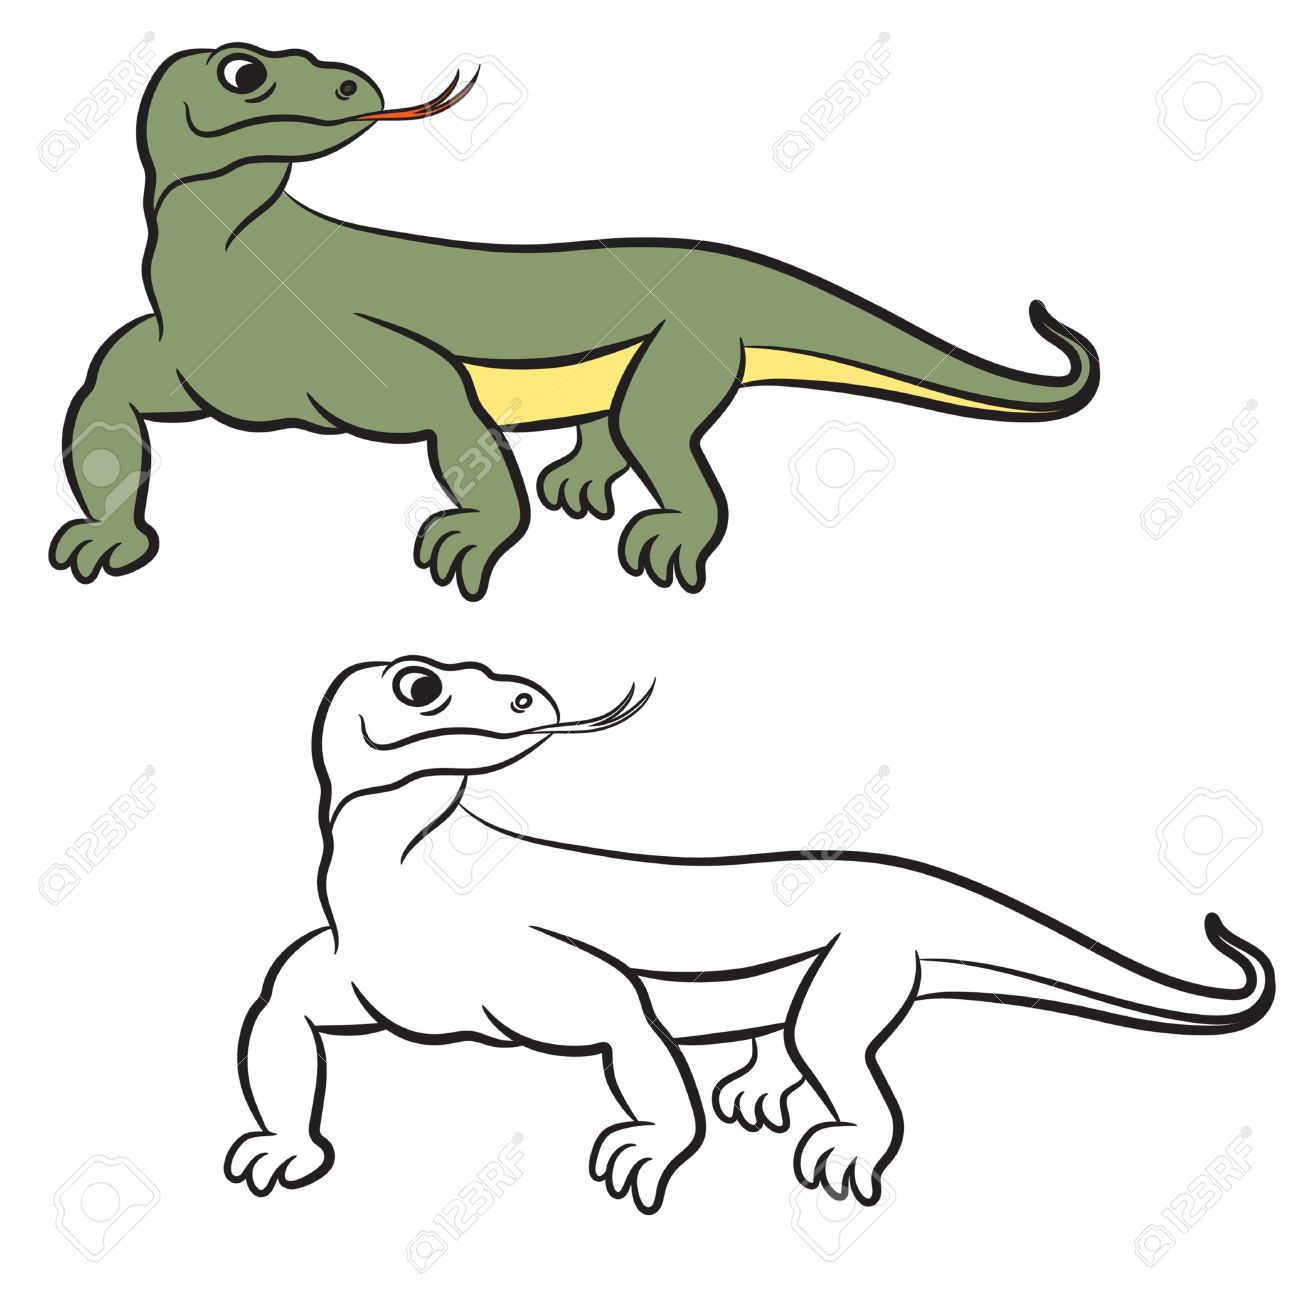 Komodo Dragon Clipart.